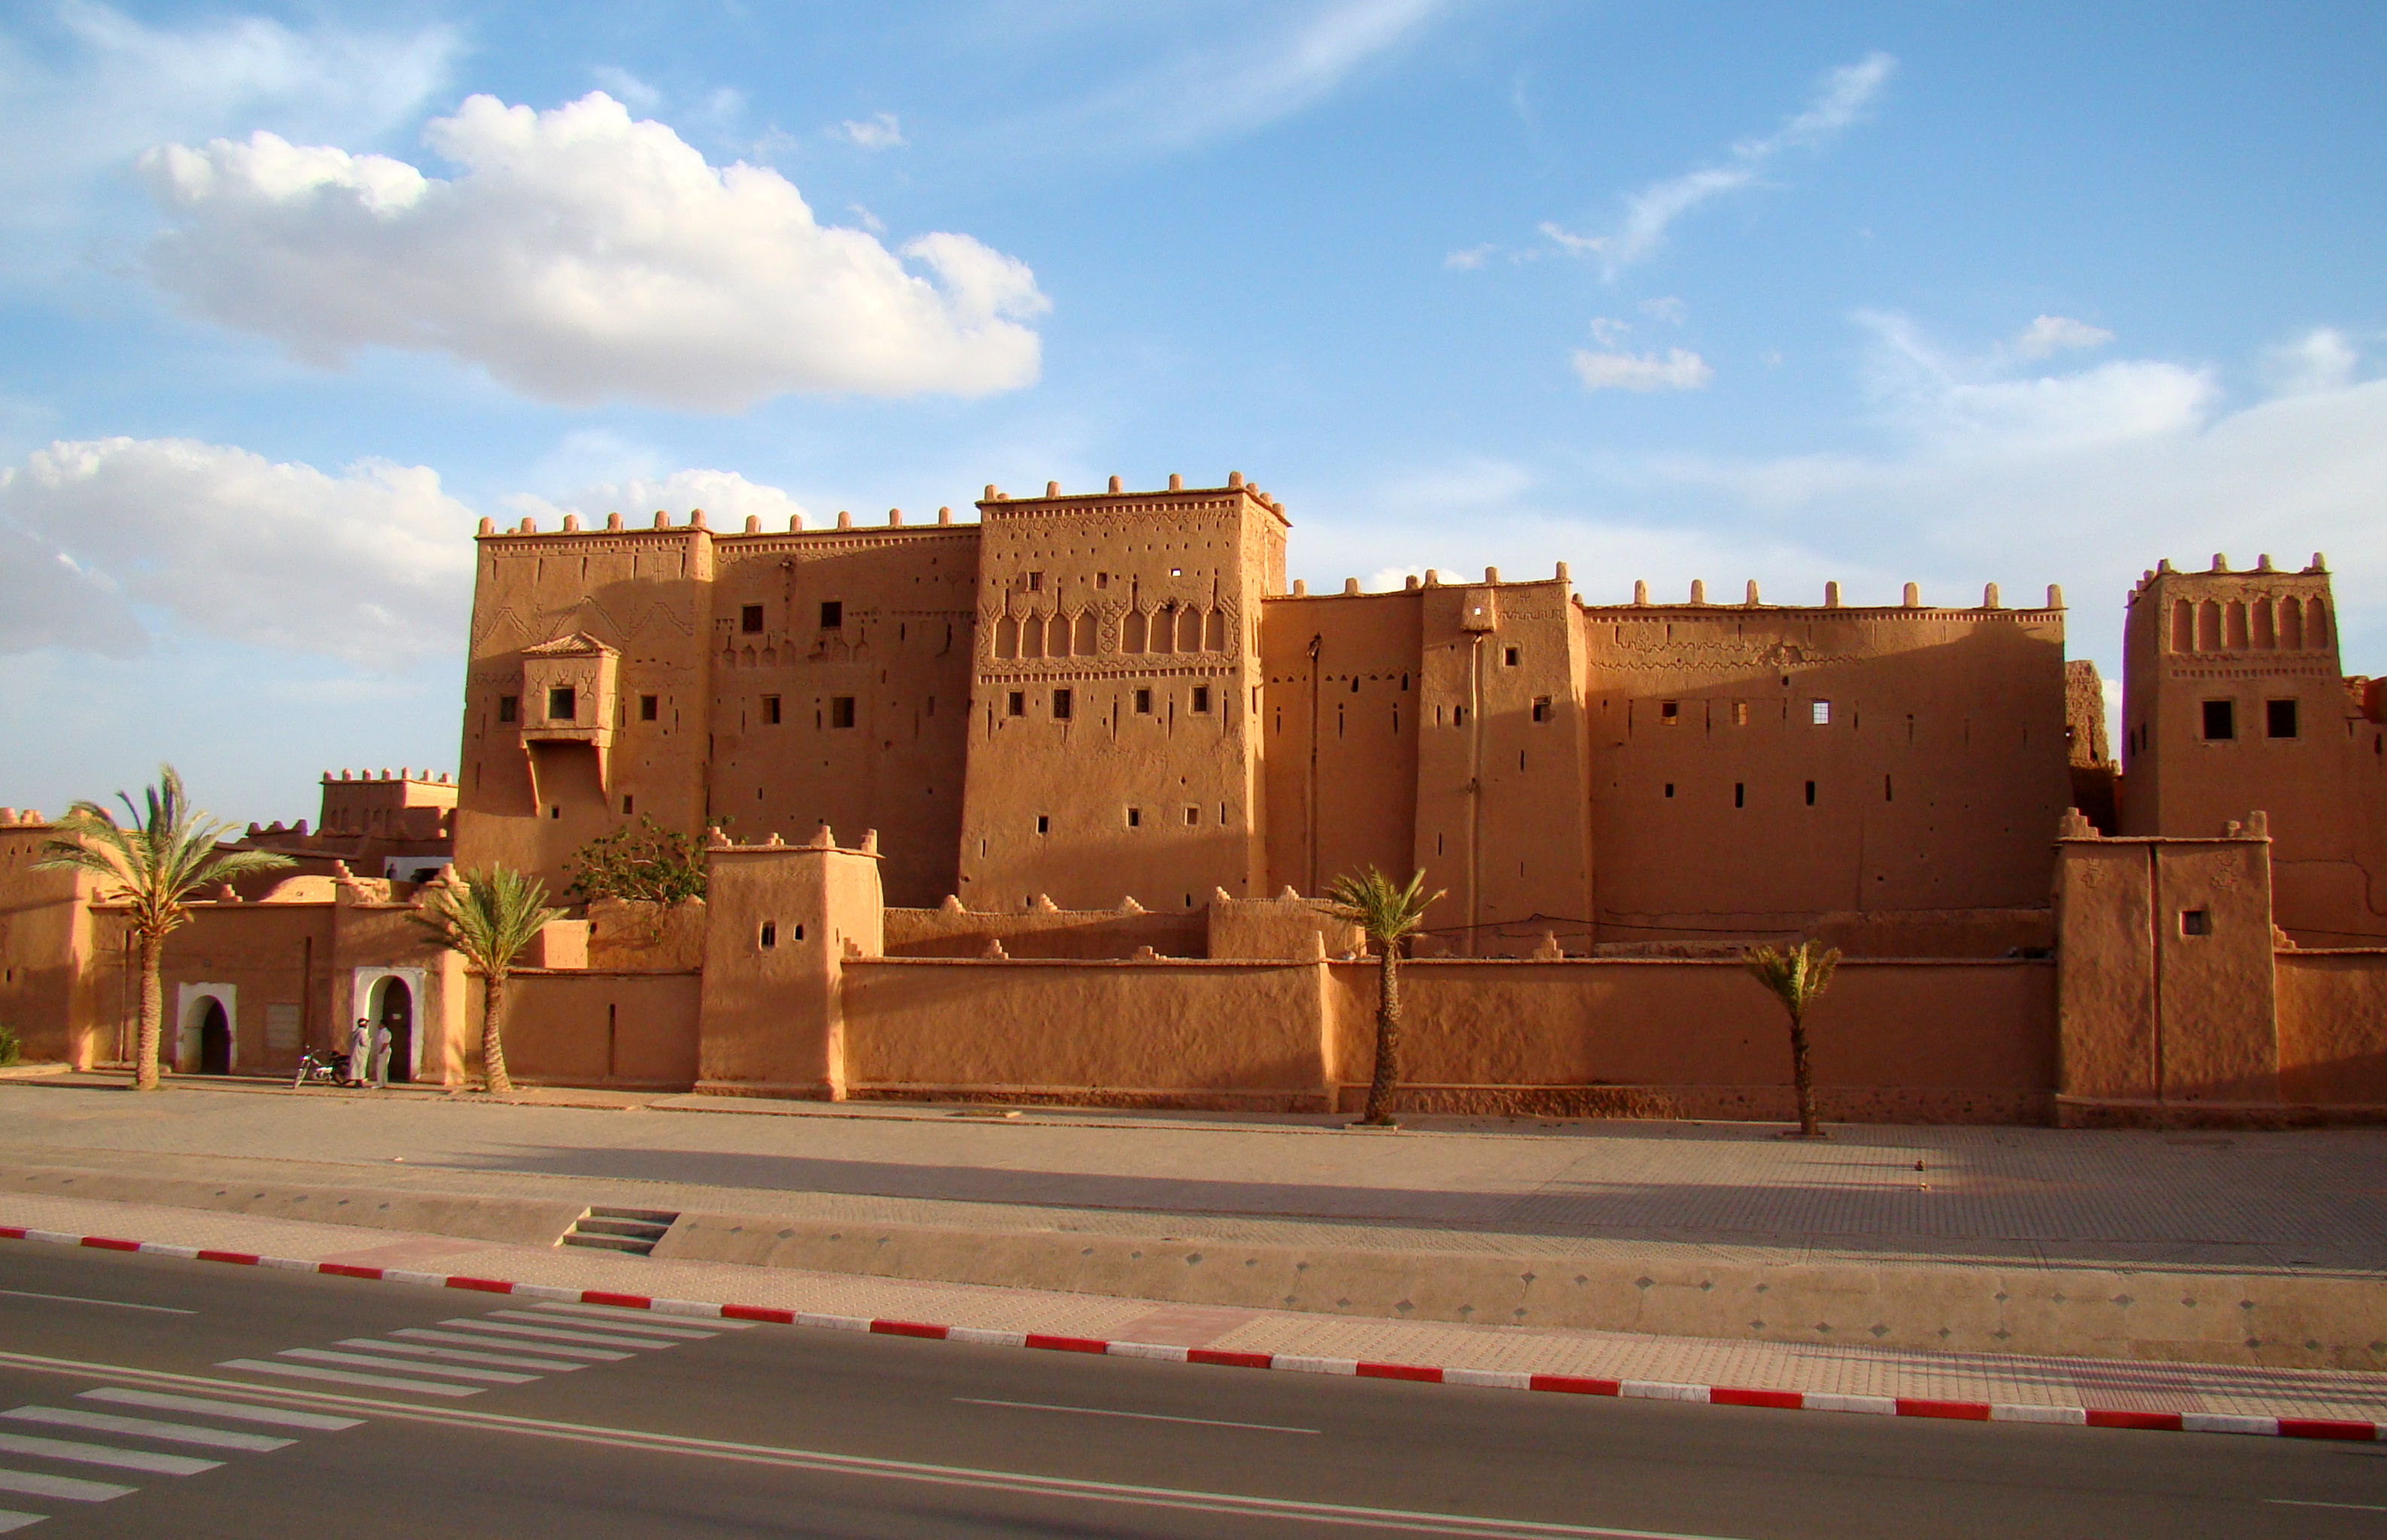 Ouarzazate Morocco  city pictures gallery : Kasbah Taourirt in Ouarzazate 2011 Wikipedia, the free ...